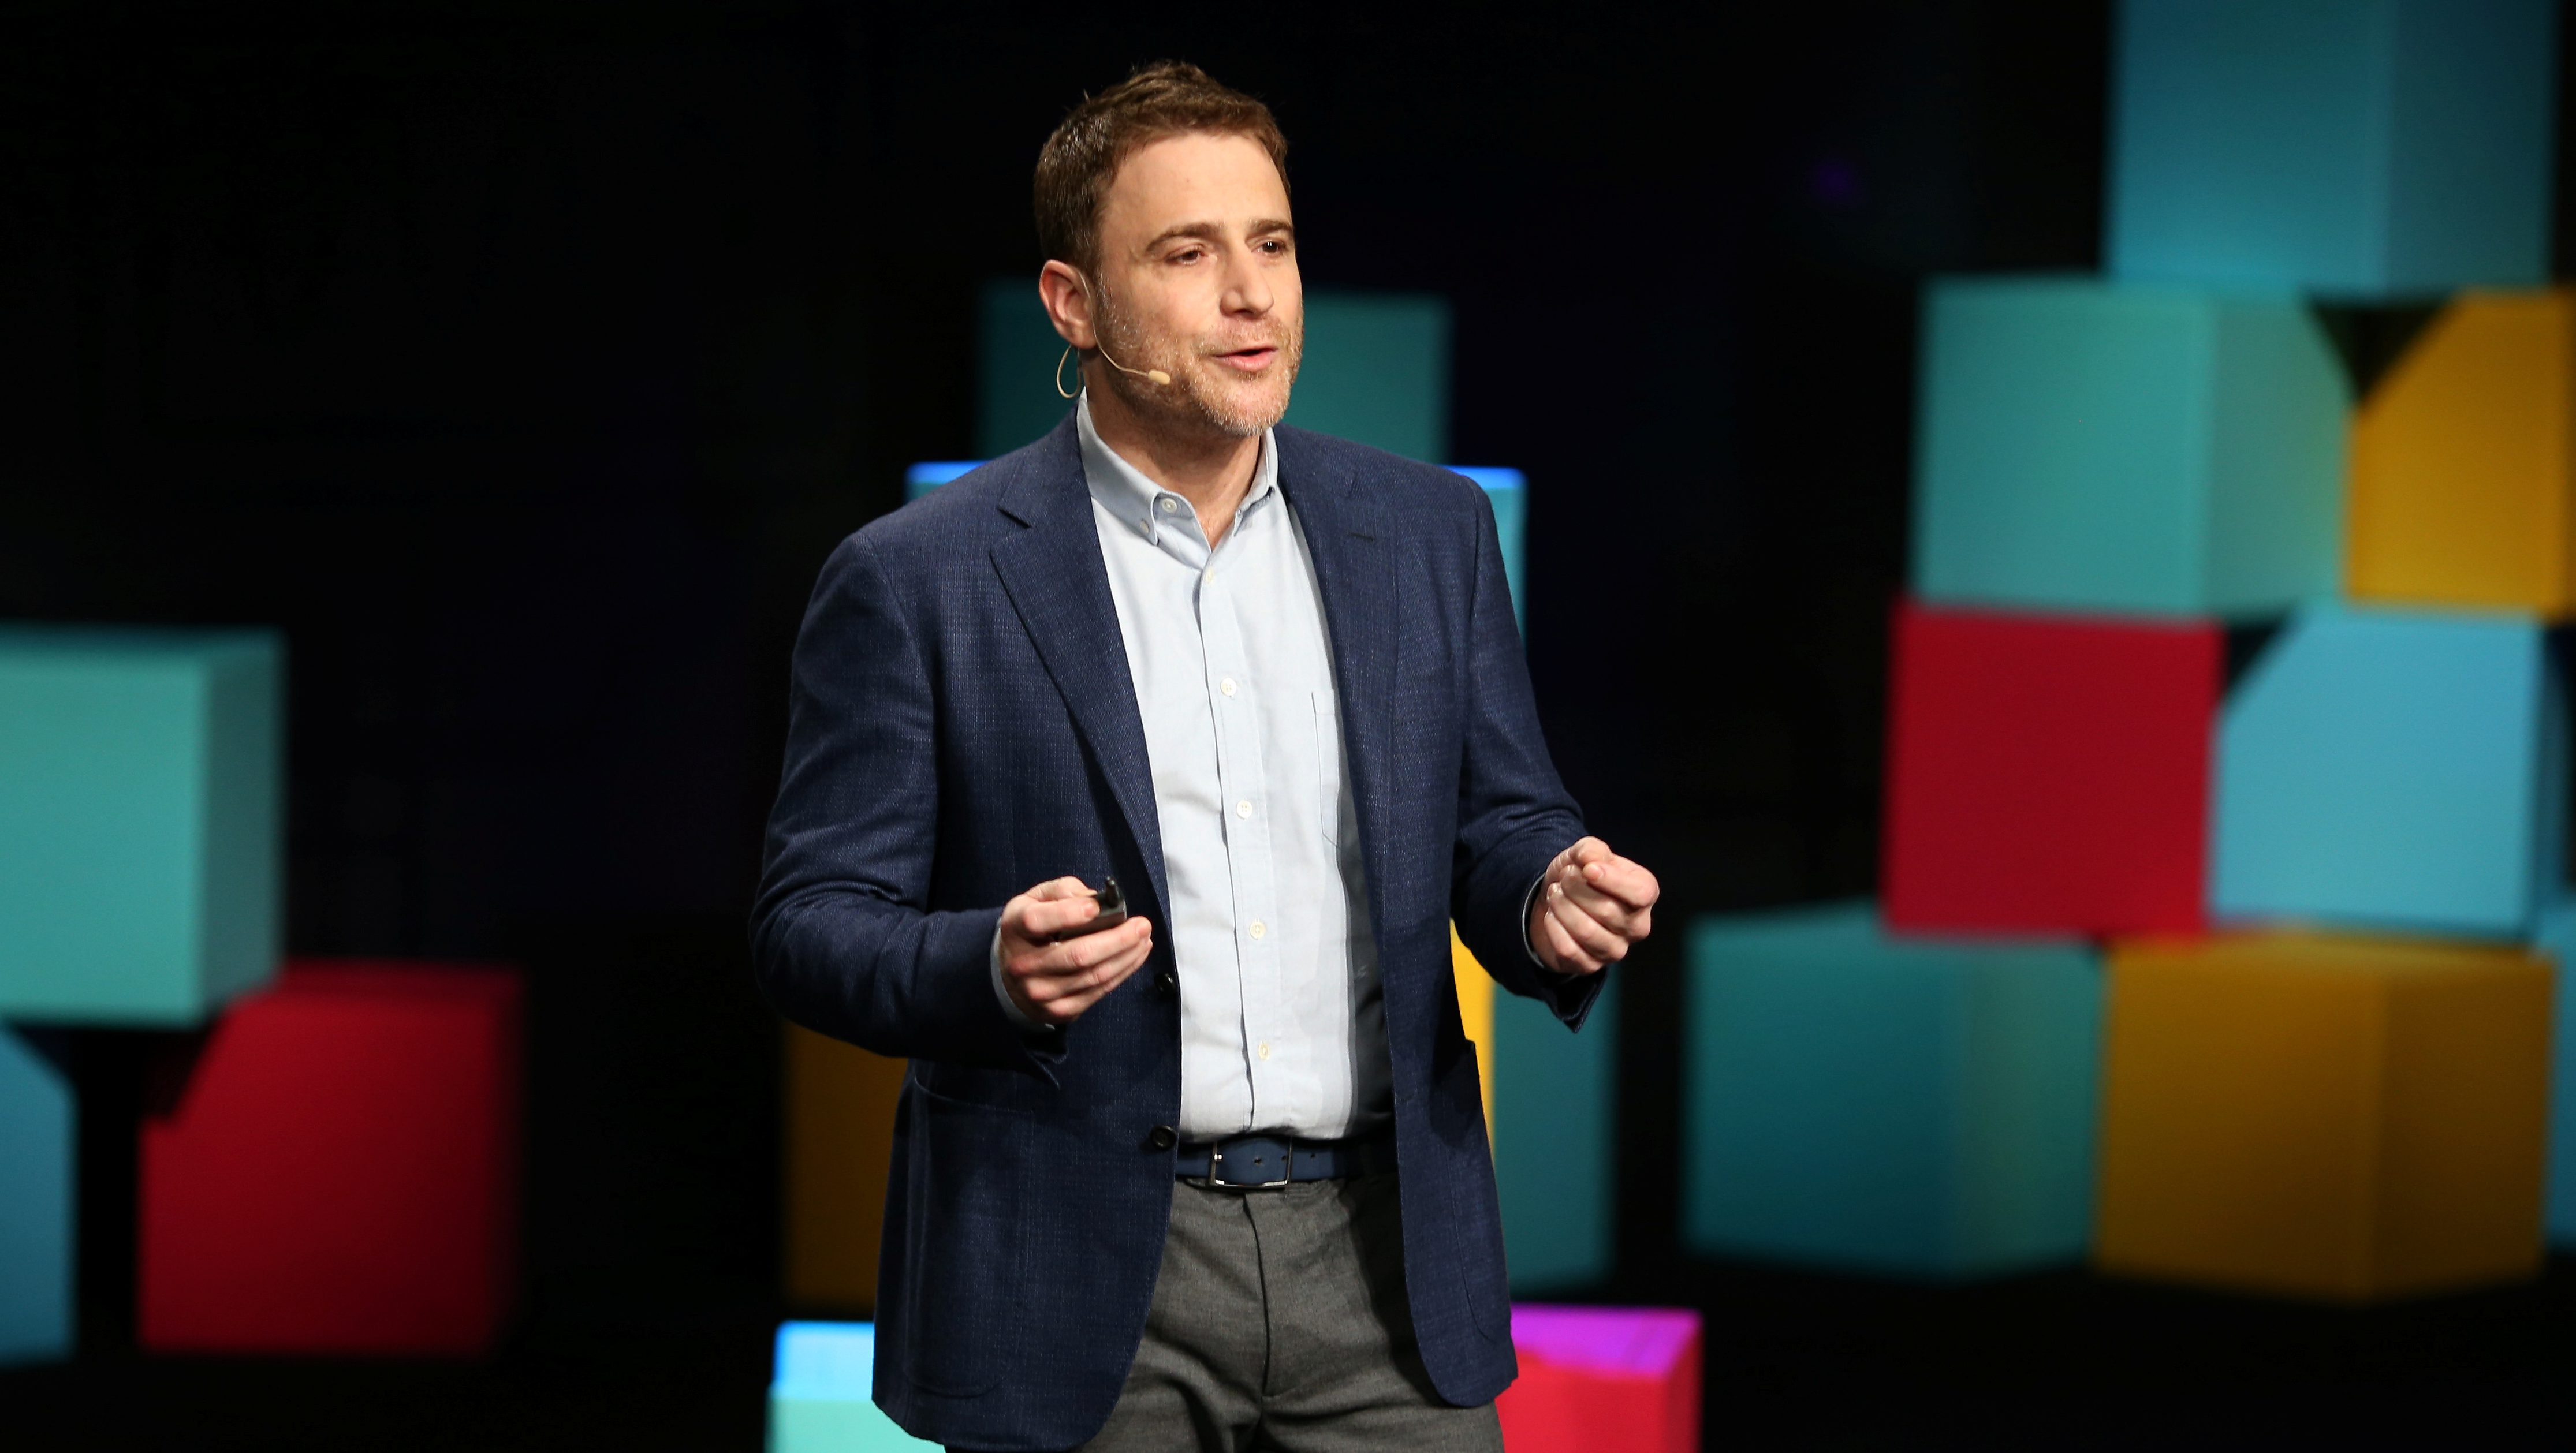 Stewart Butterfield, CEO of Slack, presents during the business messaging company's event in San Francisco, California, U.S. January 31, 2017.